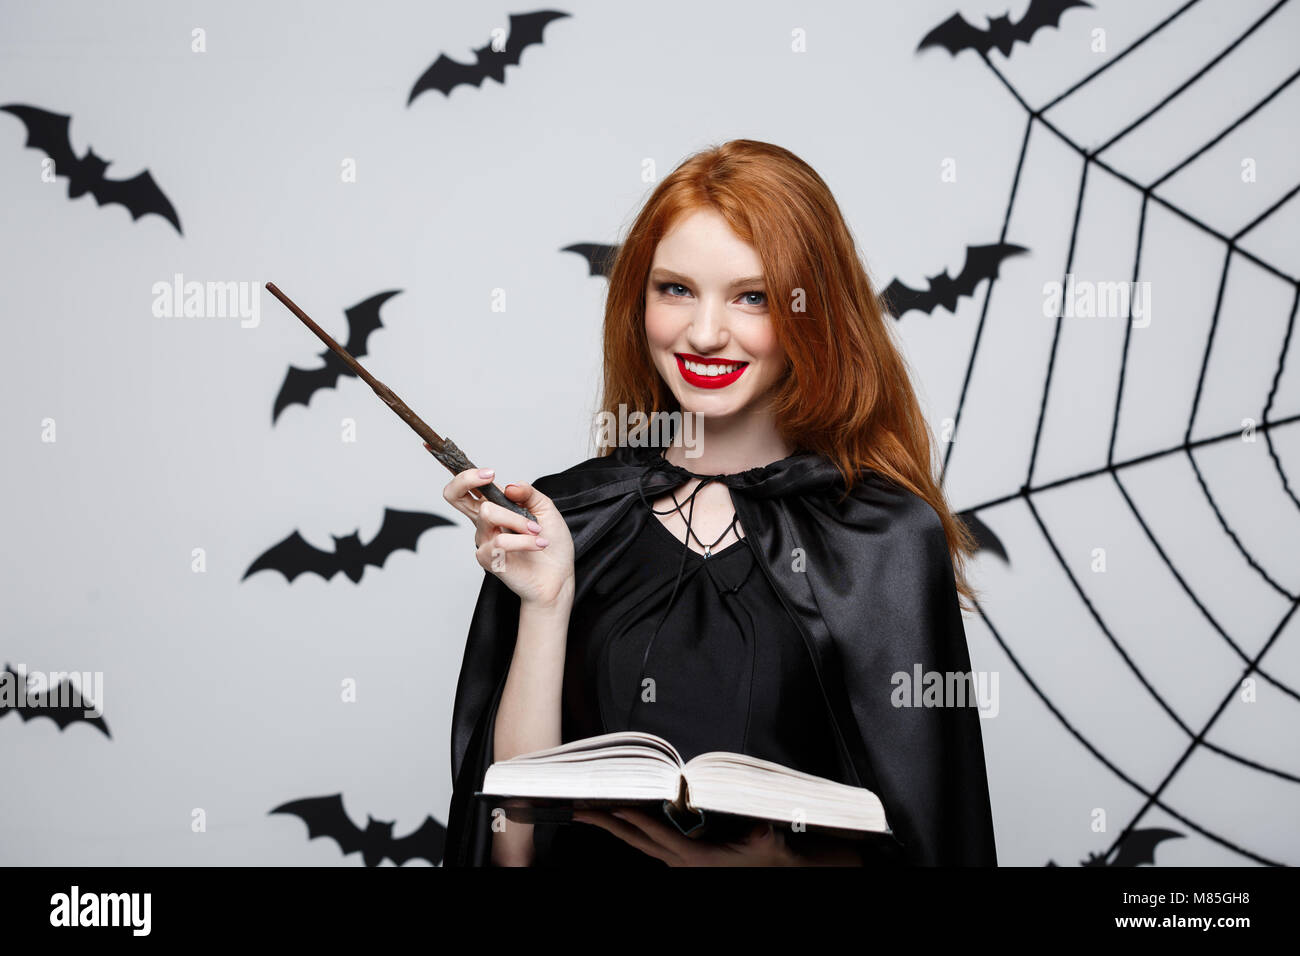 Halloween Concept - Beautiful Witch playing with magic stick and magic book on grey background. - Stock Image